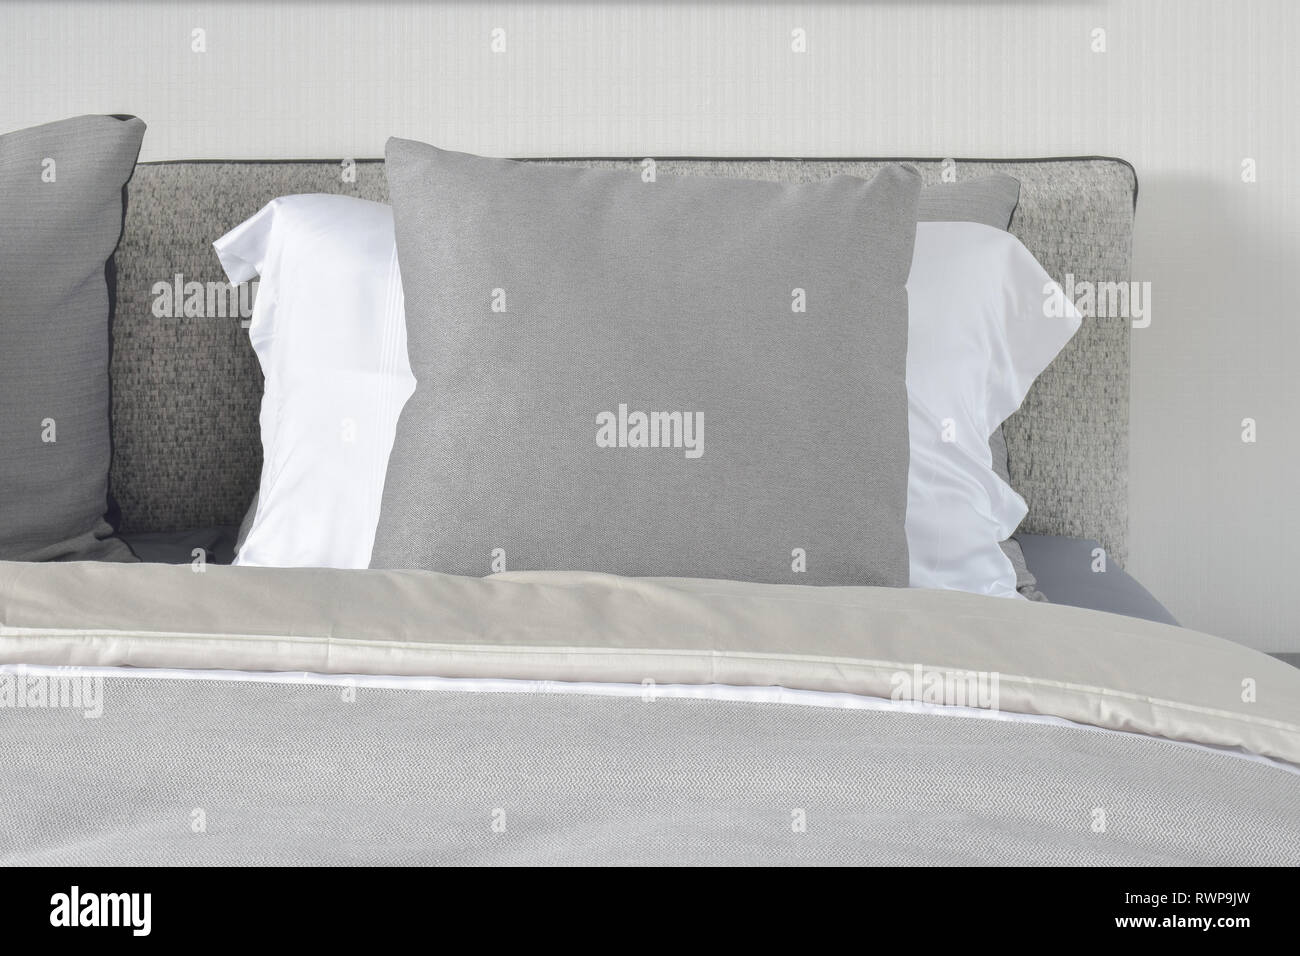 Gray And White Pillows On Bed In Gray Color Scheme Stock Photo Alamy